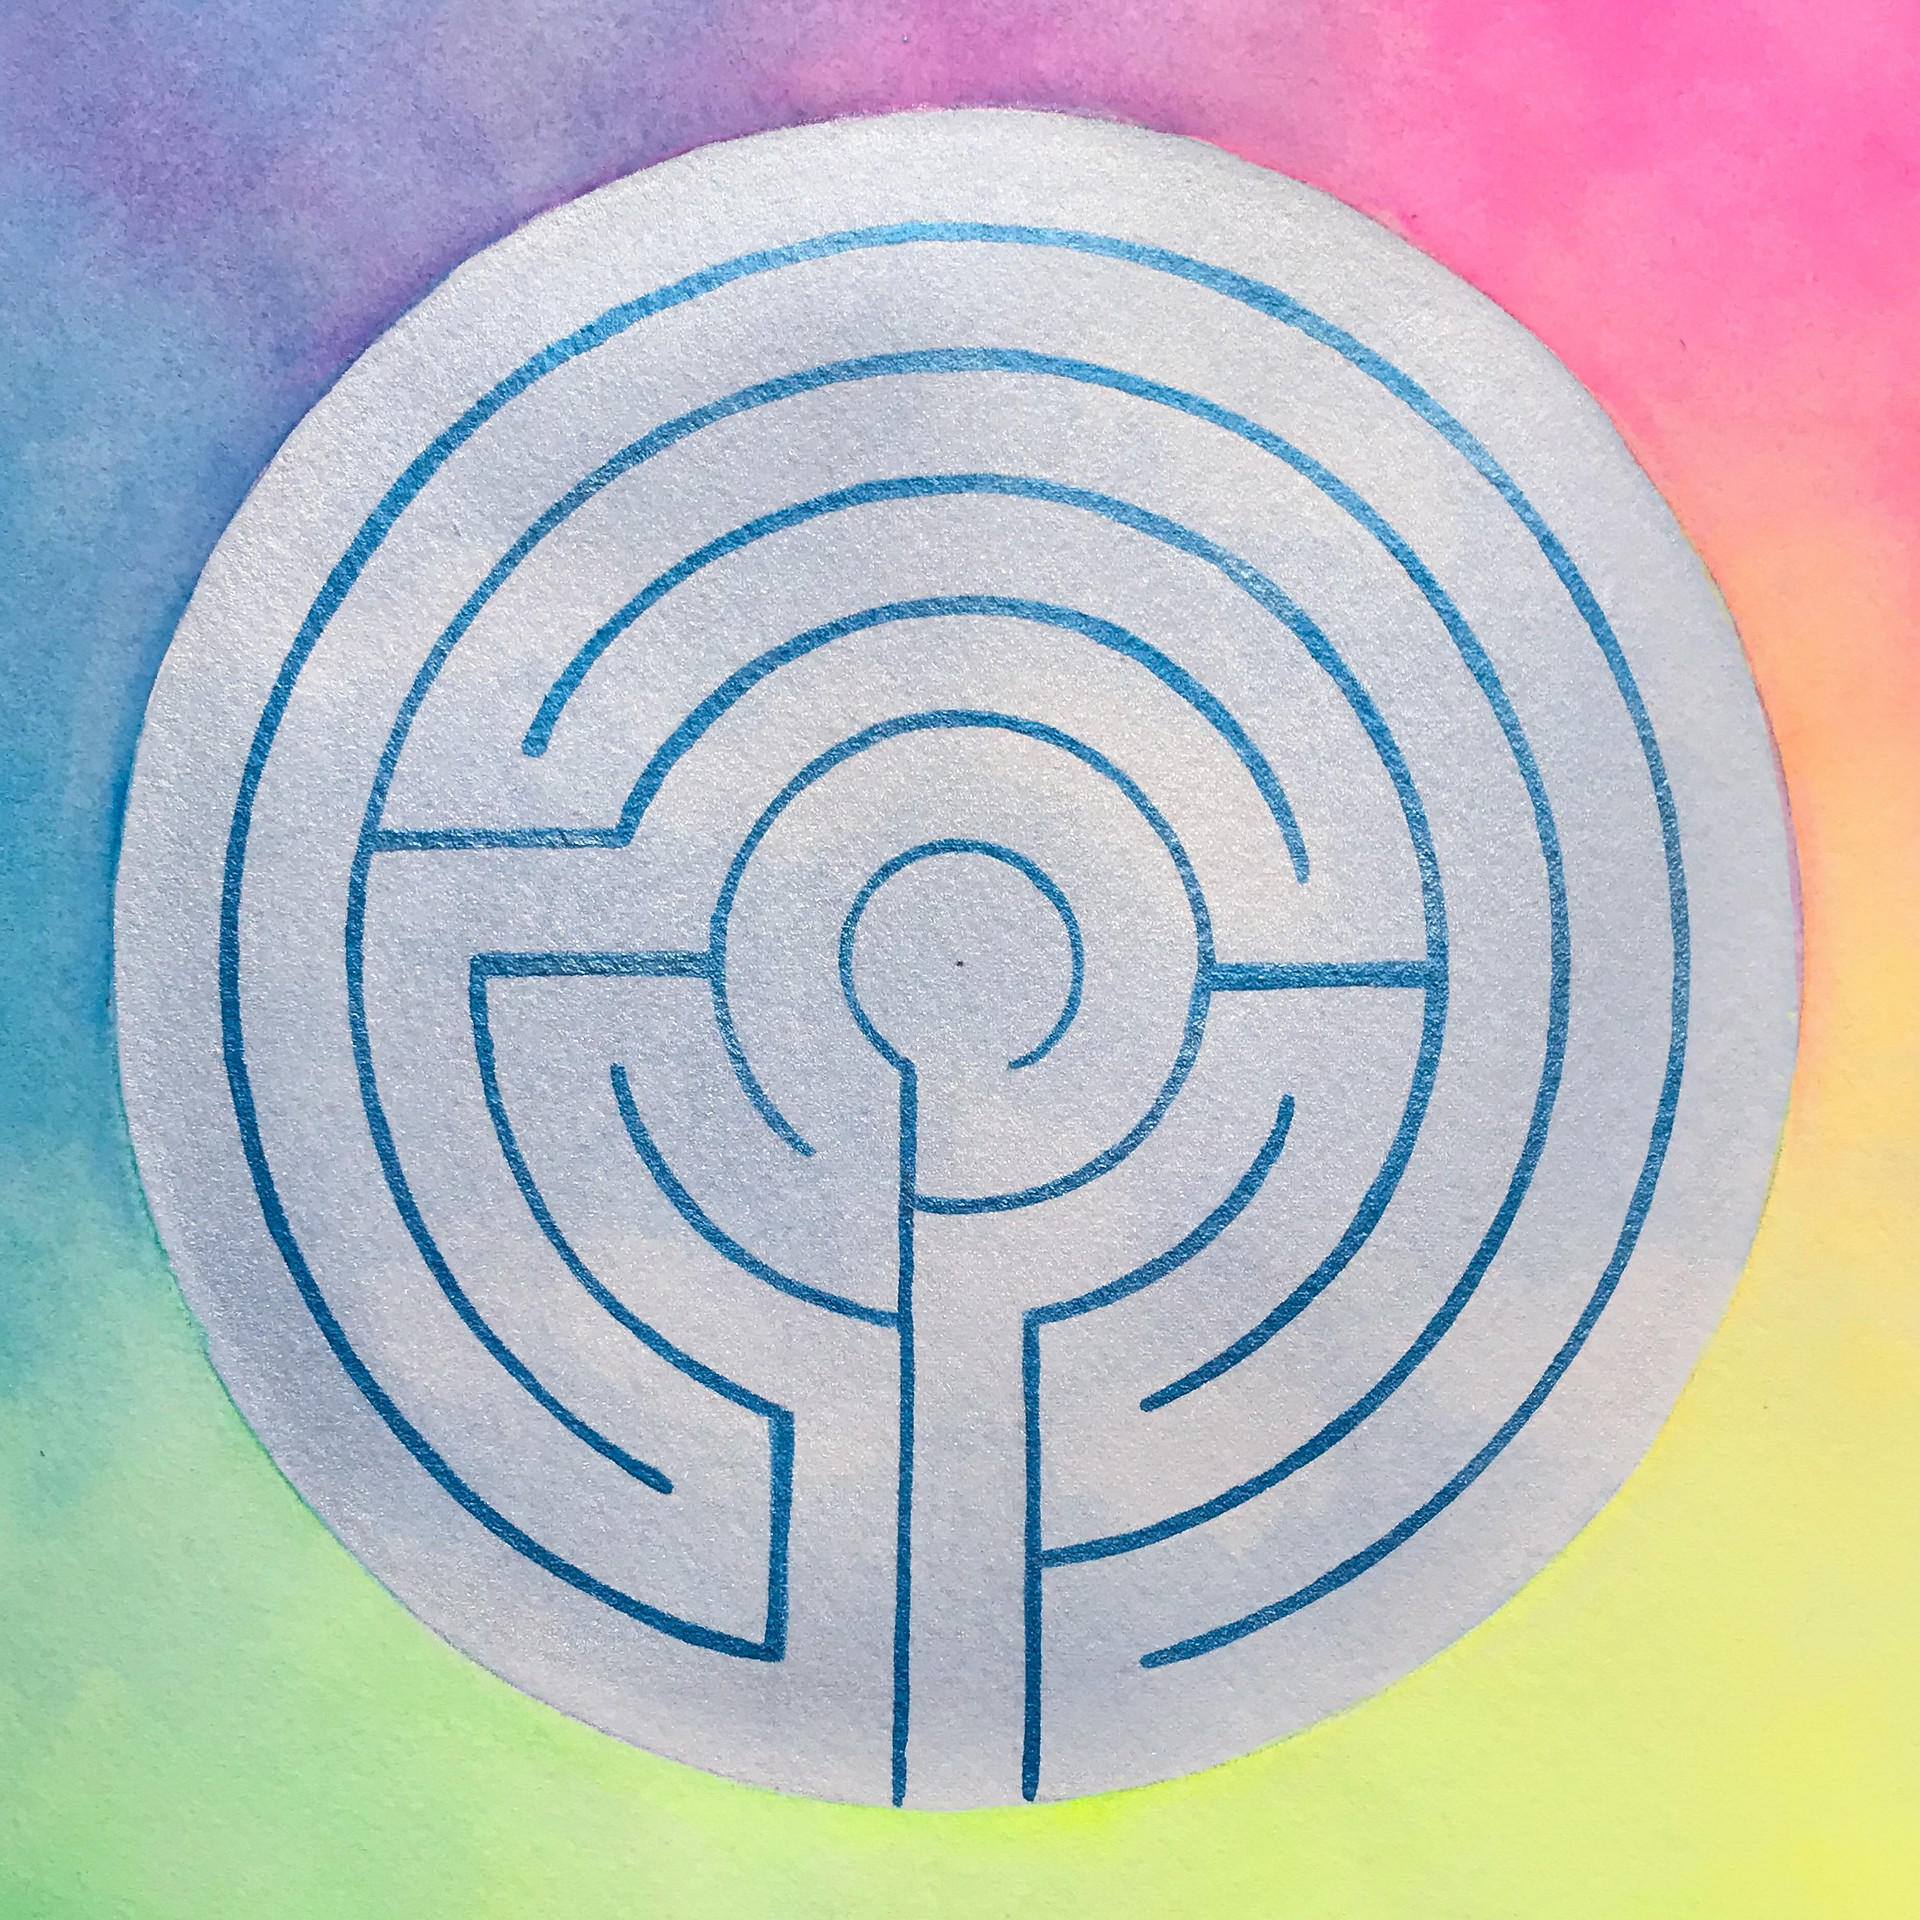 Labyrinth 3 Fluorescent and Iridescent Watercolors 2020